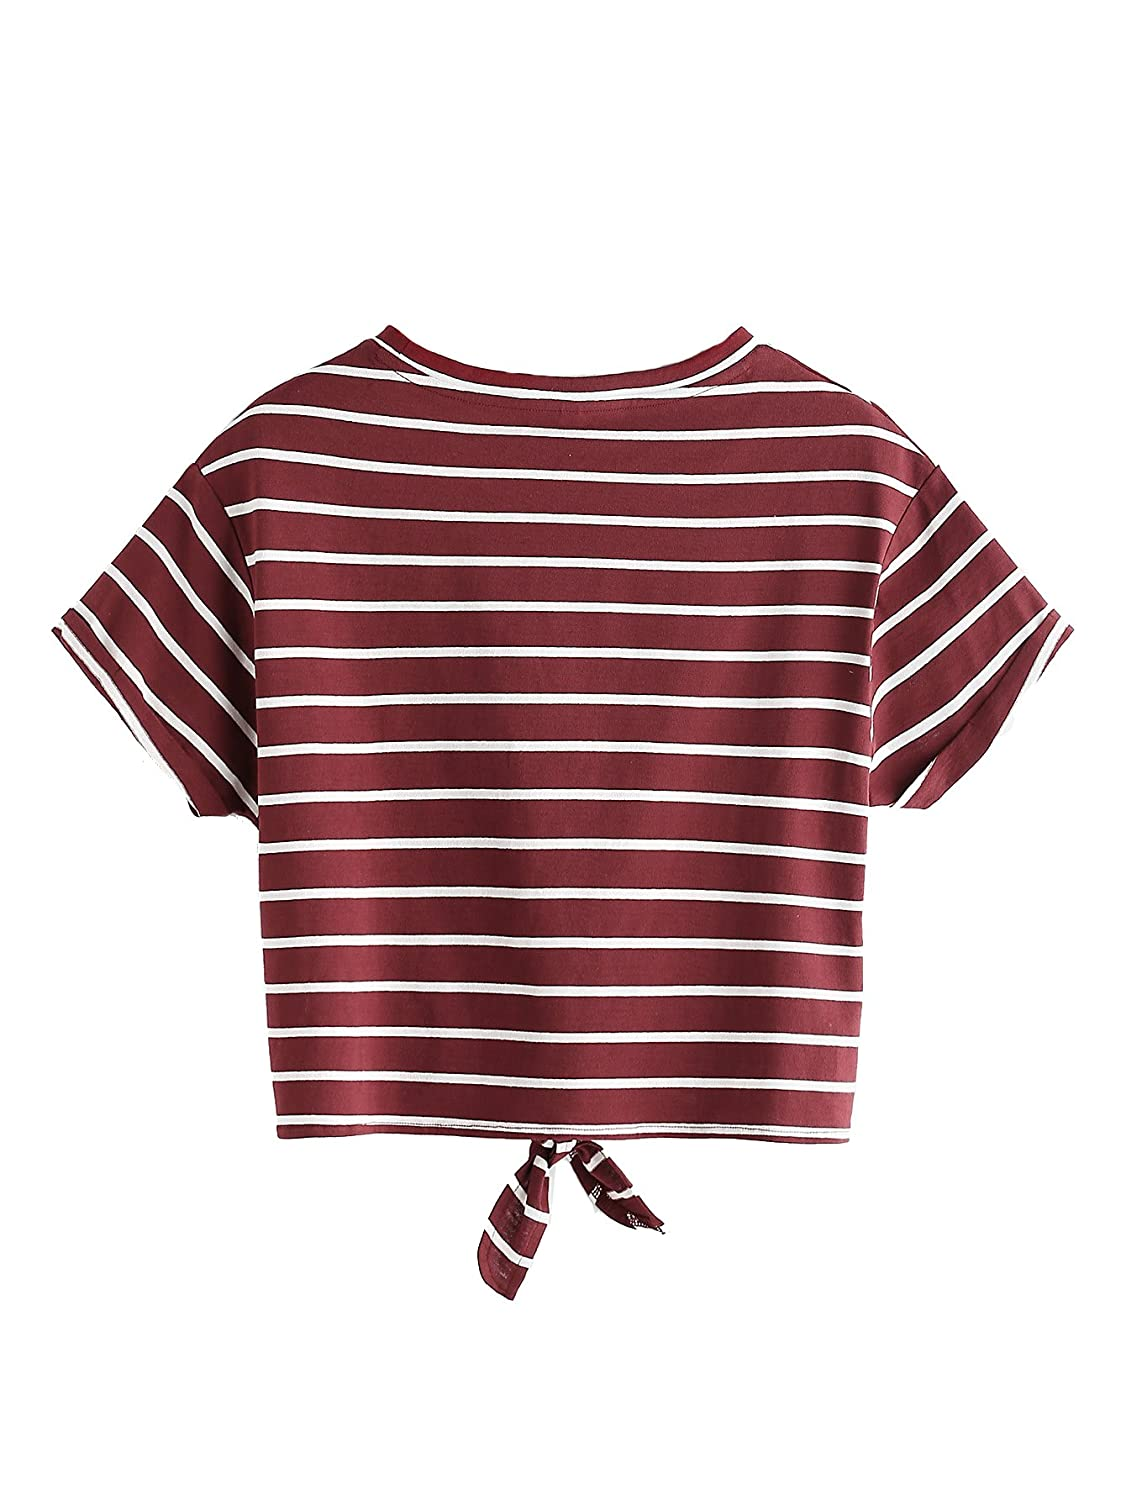 a9ba35e7a66 Romwe Women's Knot Front Cuffed Sleeve Striped Crop Top Tee T-Shirt at  Amazon Women's Clothing store: